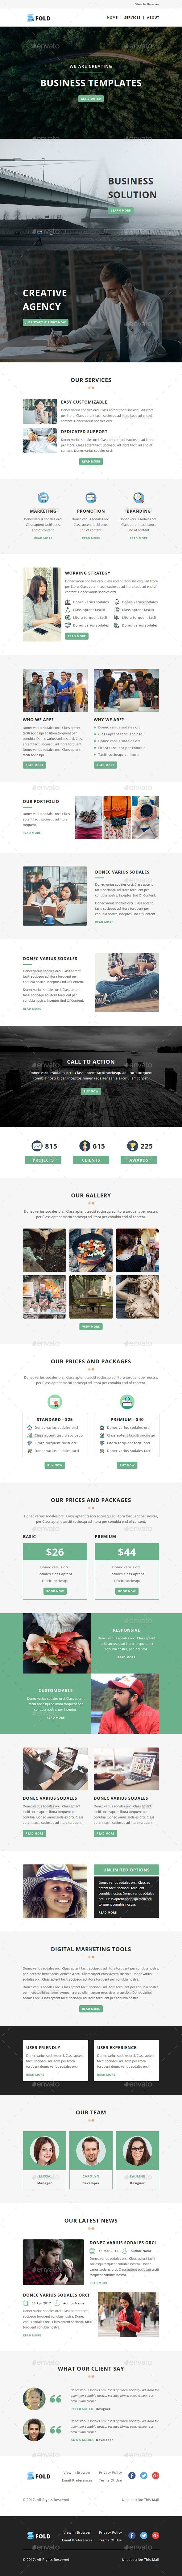 Fold - Email Newsletter PSD Template - E-newsletters Web Elements